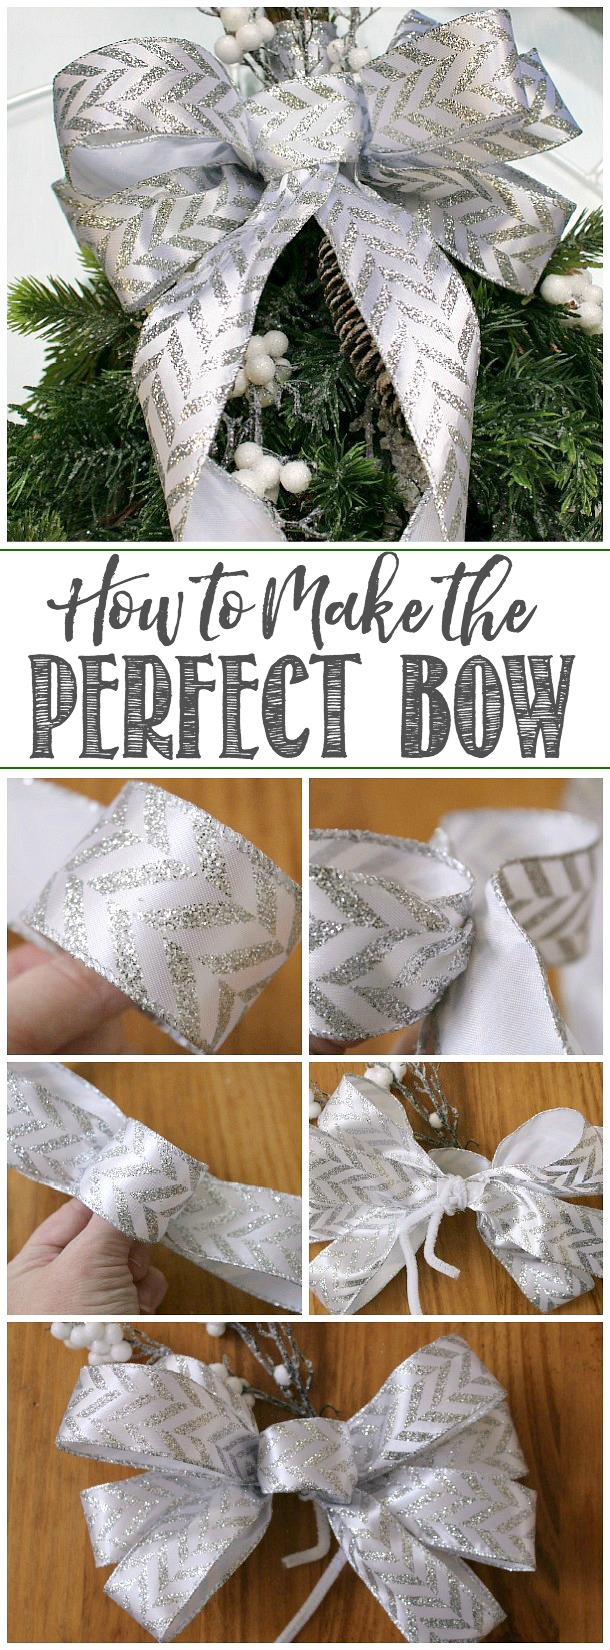 Step by step instructions to make a perfect bow using ribbon.